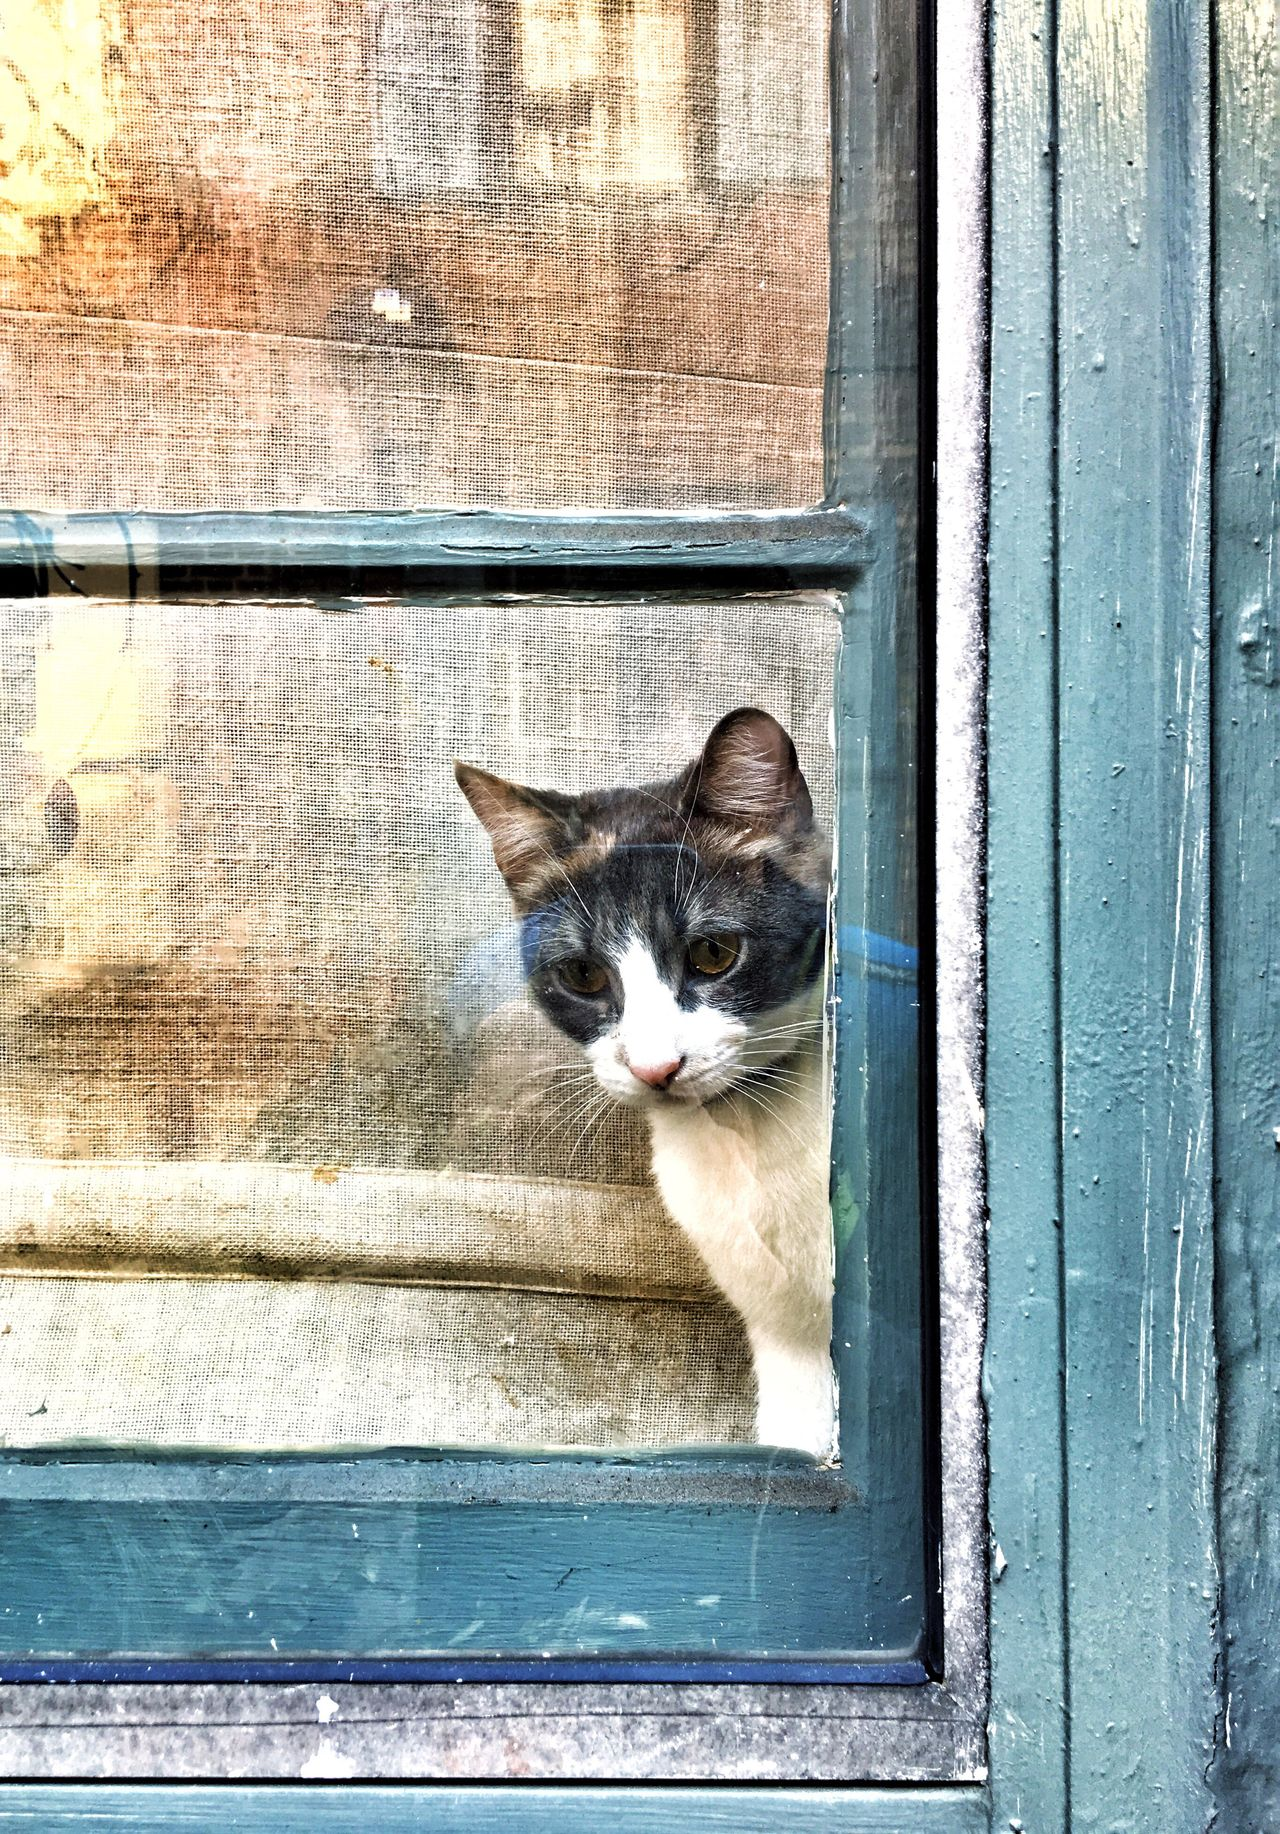 Domestic Cat Pets Domestic Animals Mammal Animal Themes Feline No People One Animal Outdoors Building Exterior Portrait Day Close-up Sliding Door